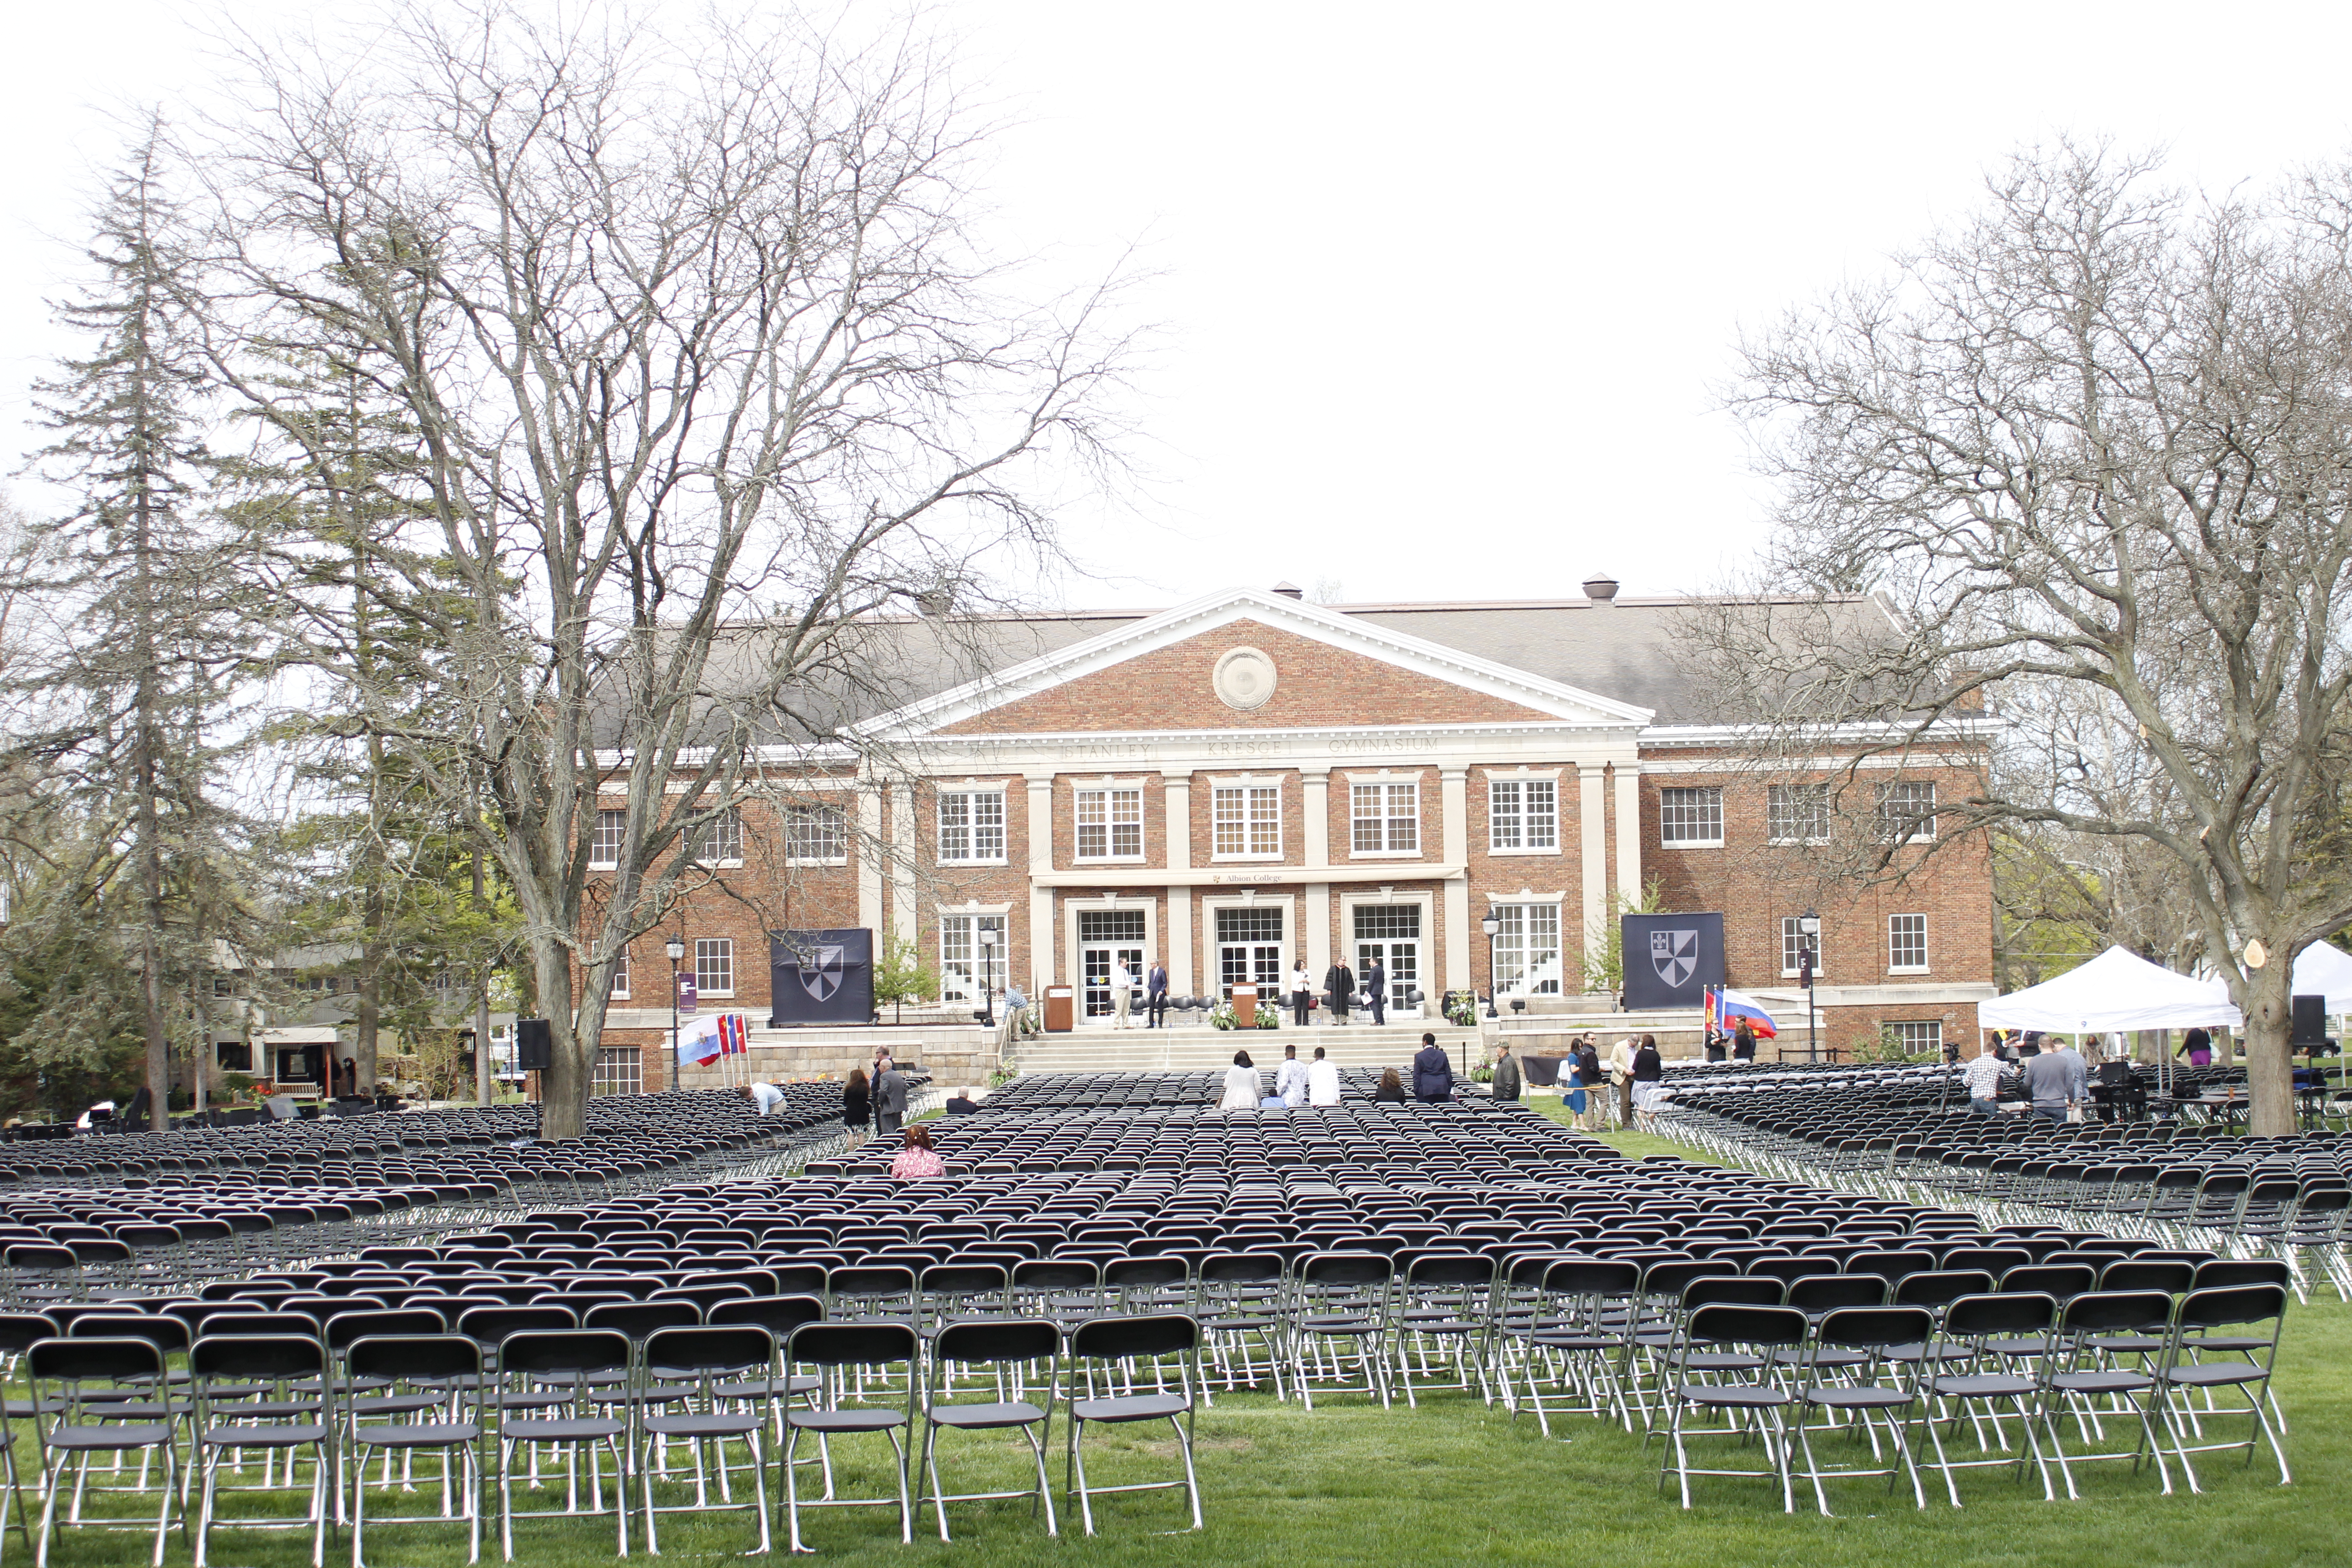 A livestream of the commencement proceedings for the Albion College graduating class of 2019